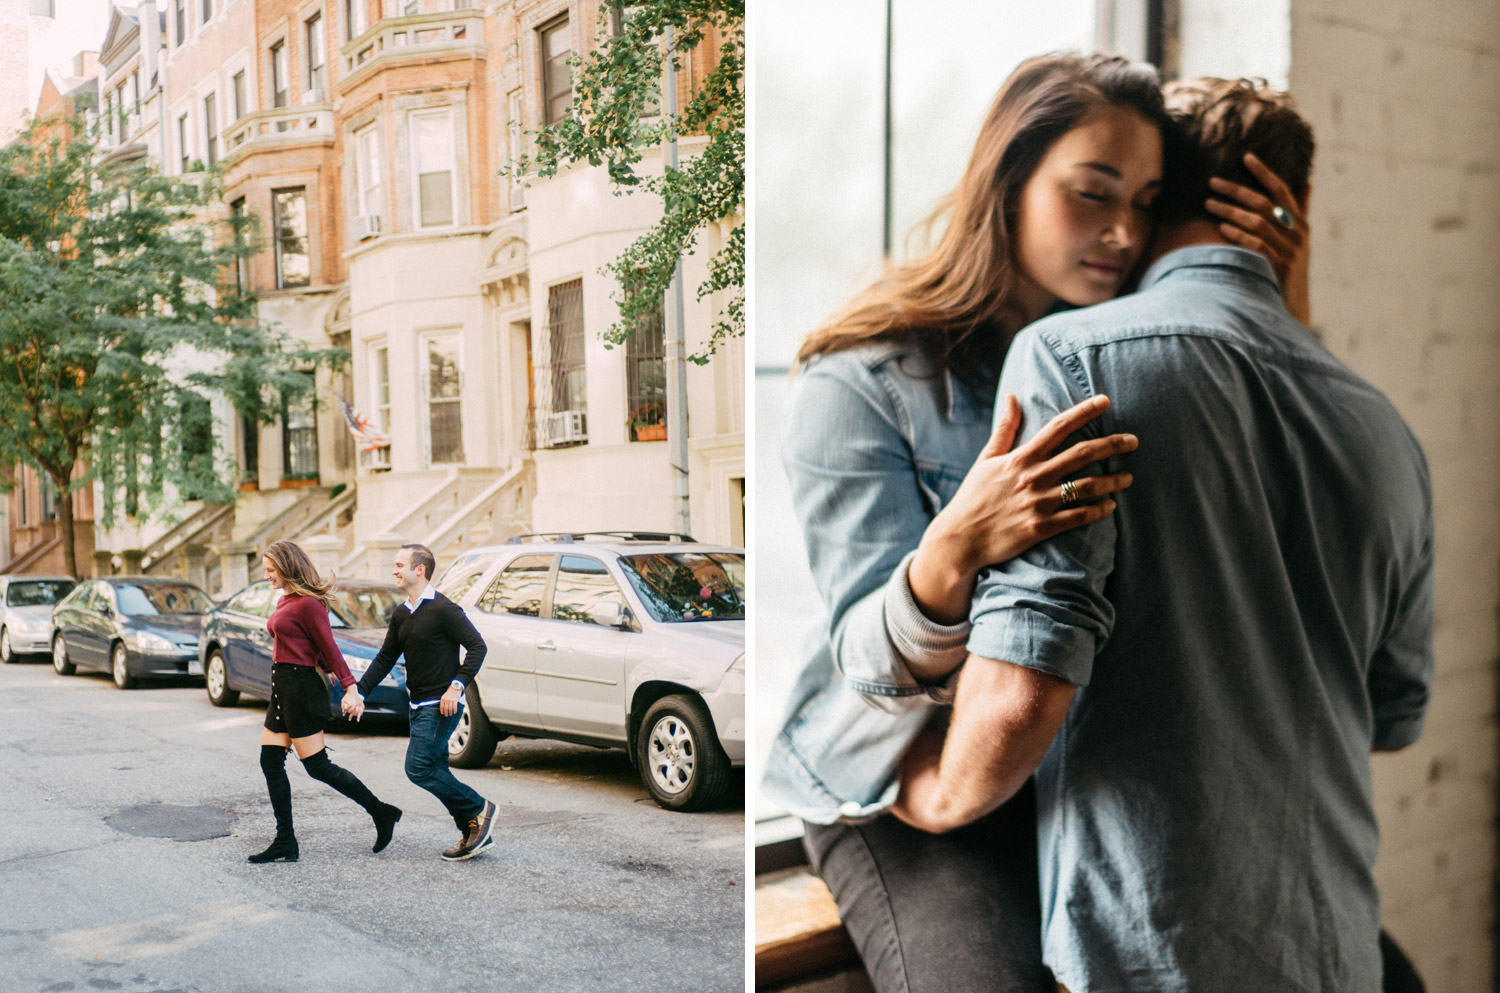 New York Street Engagement Photography by geneoh photography